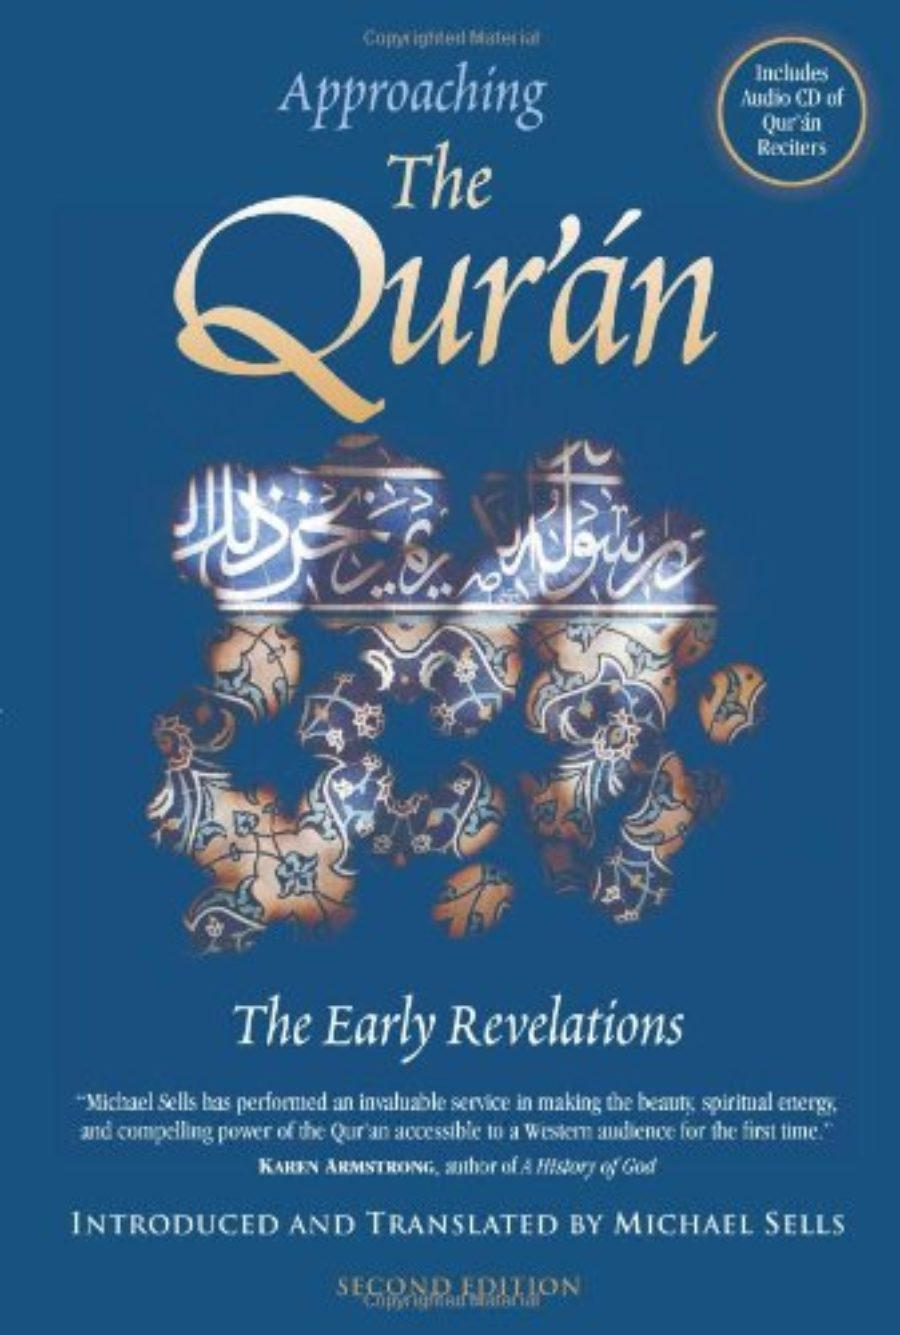 Cover of Approaching the Qur'an: The Early Revelations